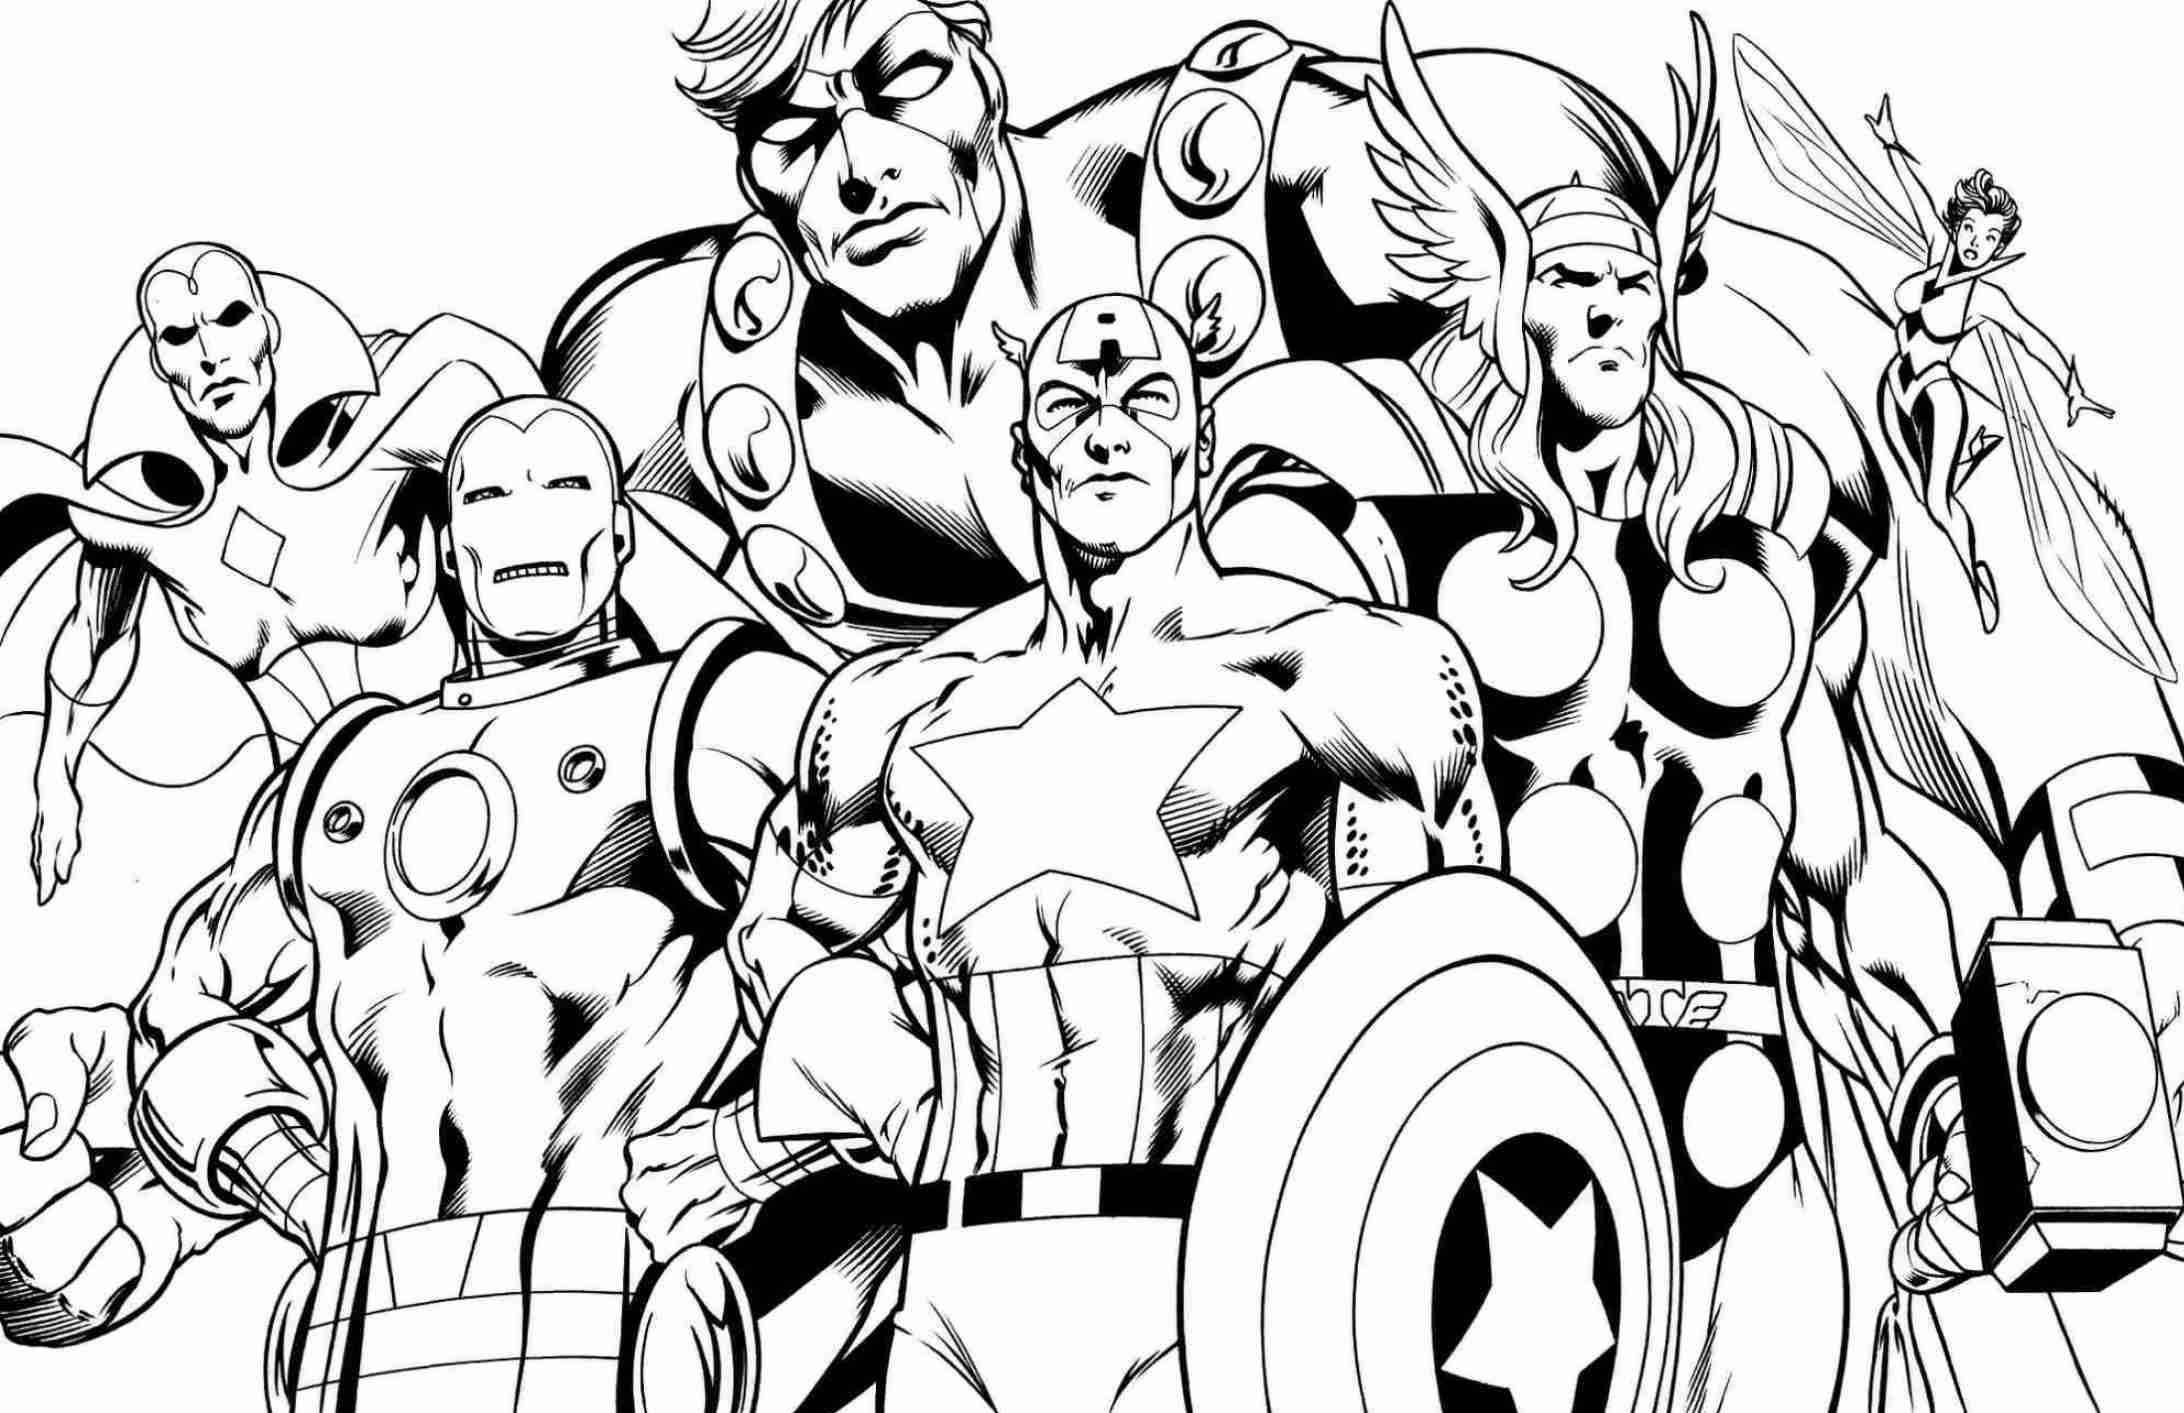 marvel superhero coloring pages marvel superhero iron man 3 flying and runnning colouring pages superhero marvel coloring